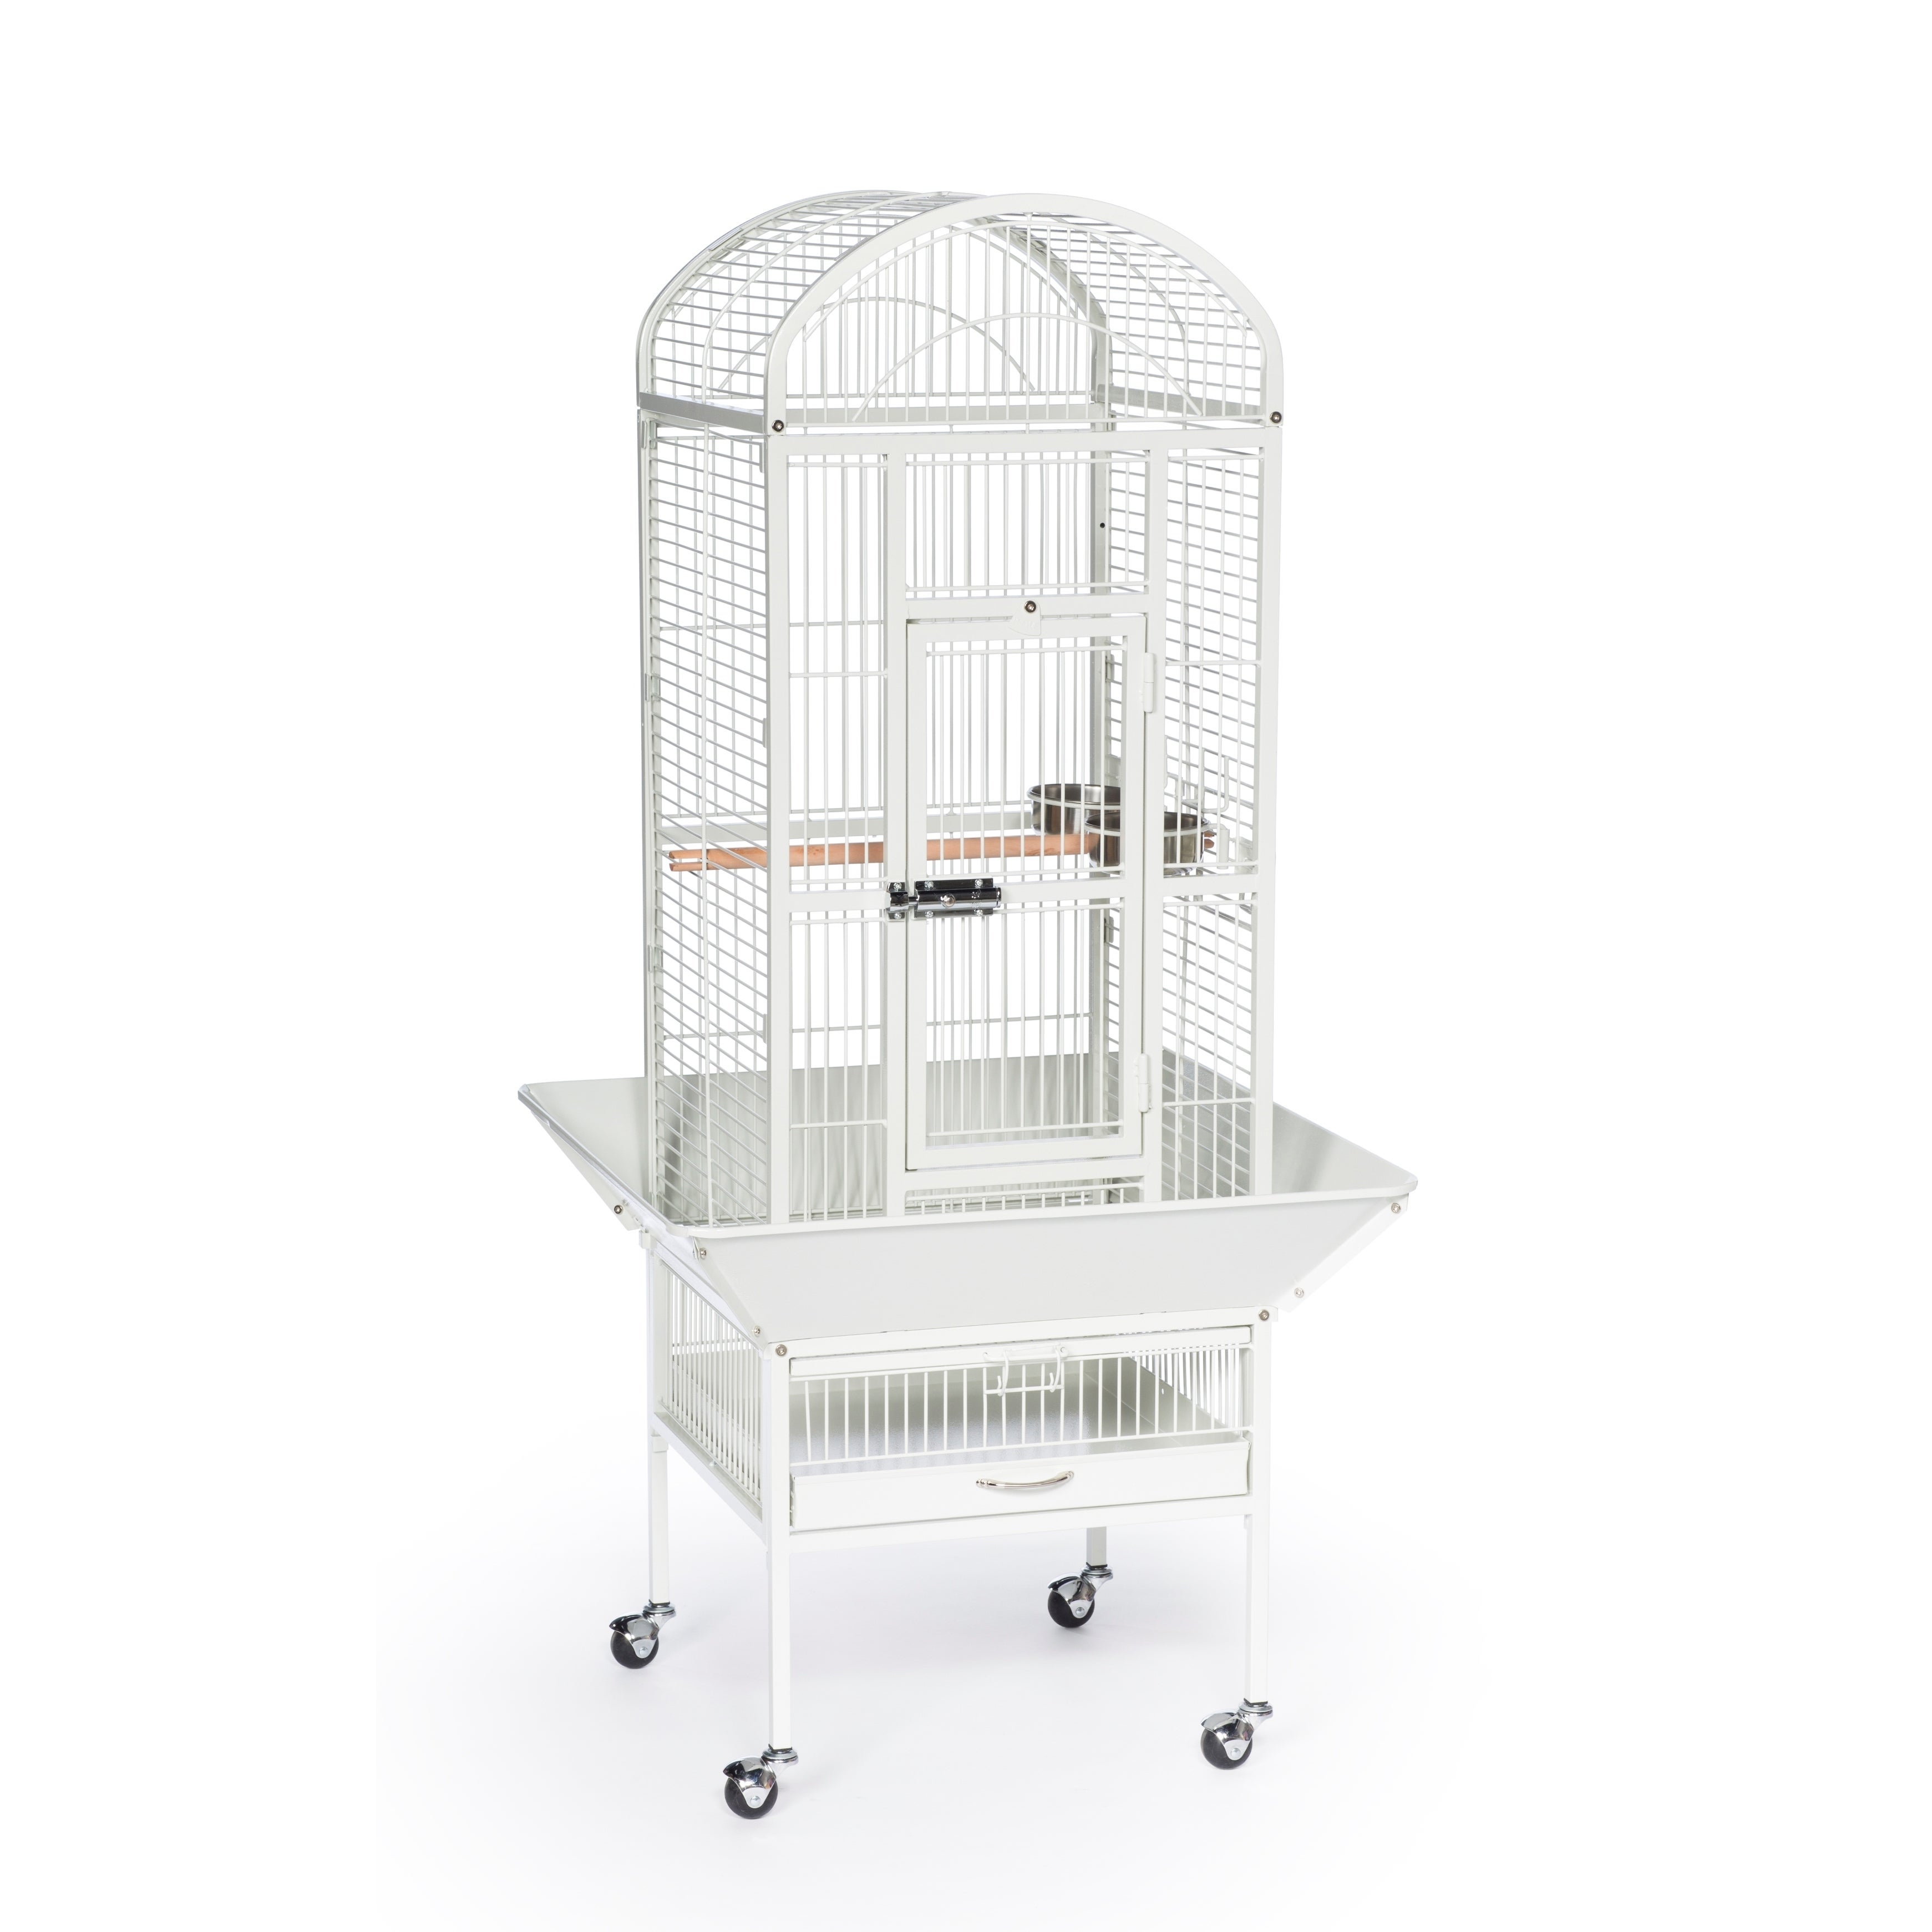 Prevue Pet Products Small Dometop Bird Cage (White), Beig...